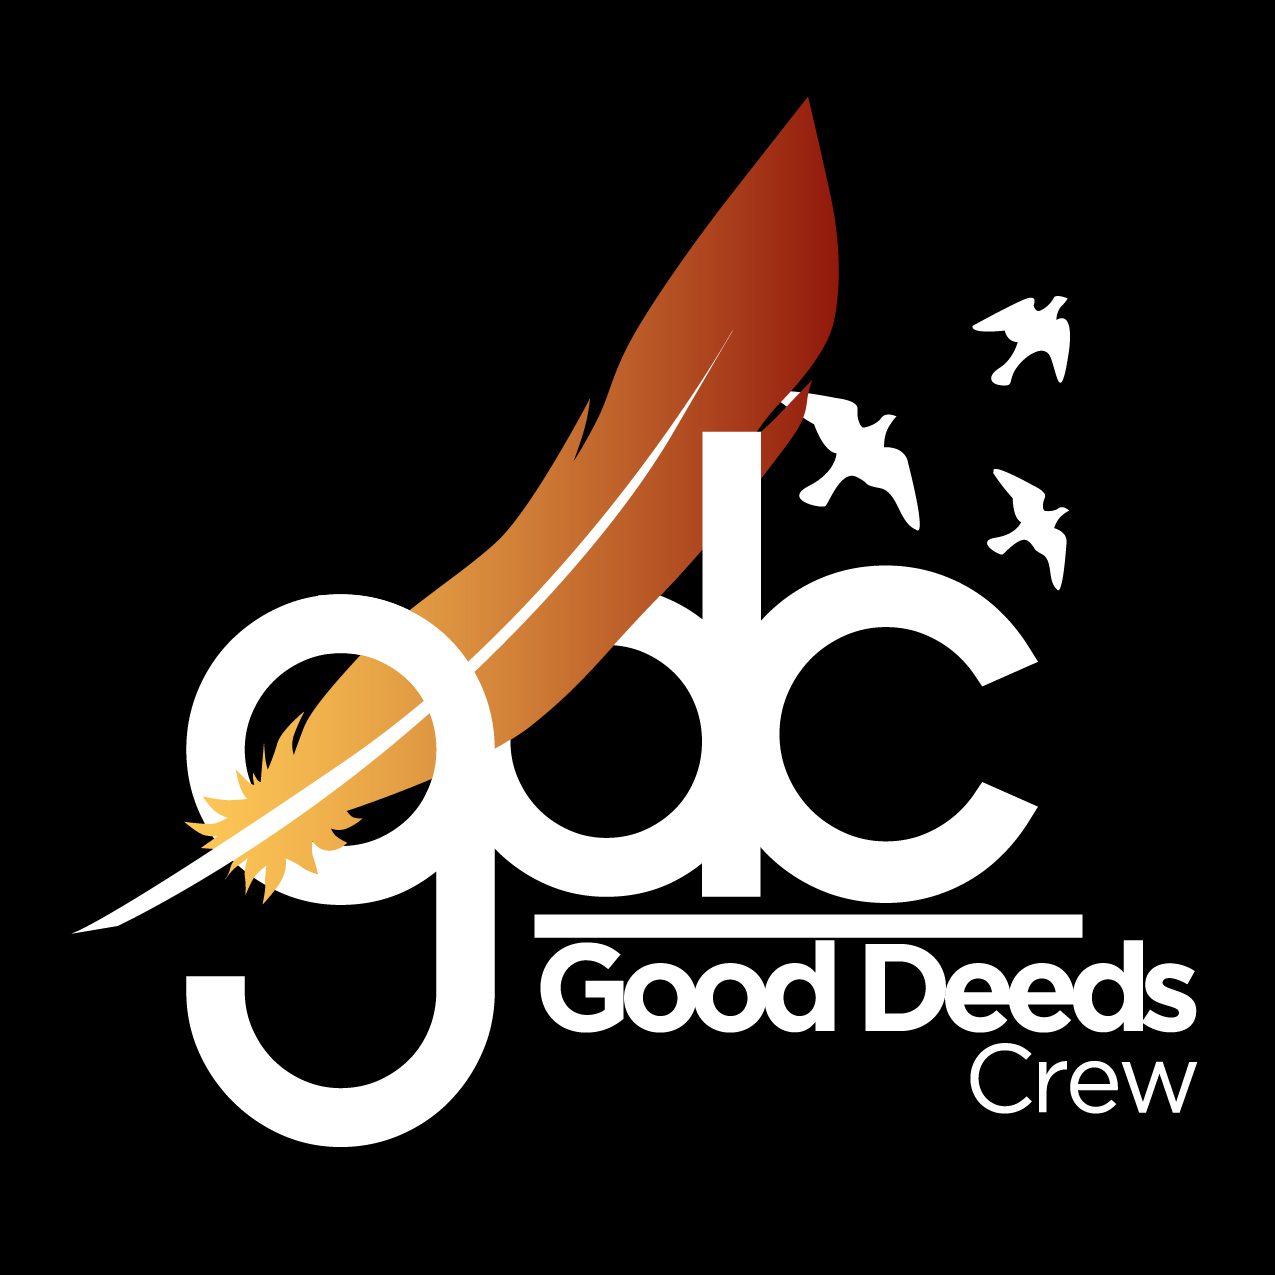 medres-white-K_Moons_-_Good_Deeds_Crew-final-01.jpg